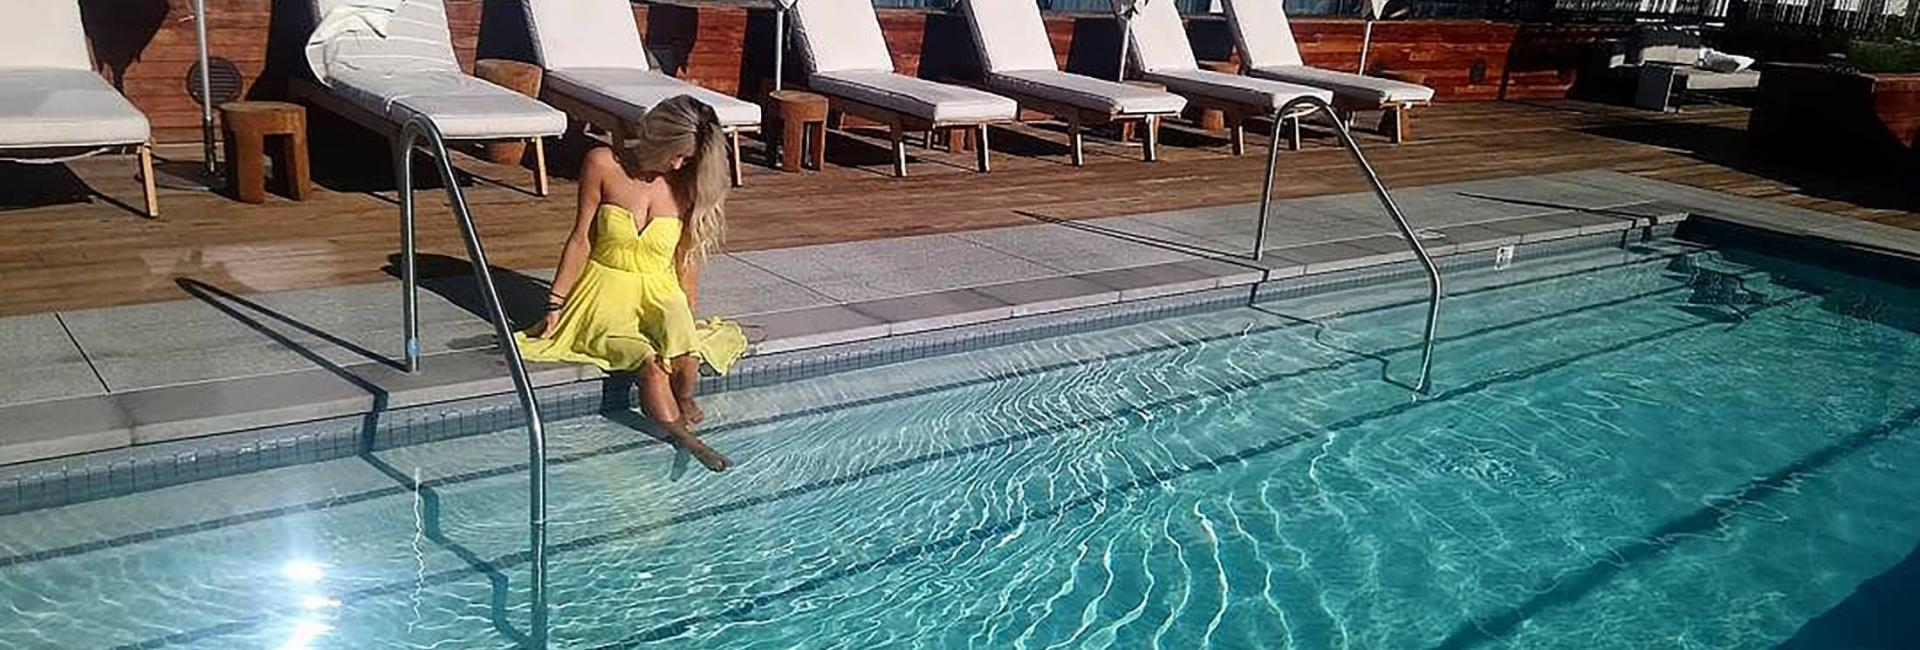 woman dangling her feed in the pool